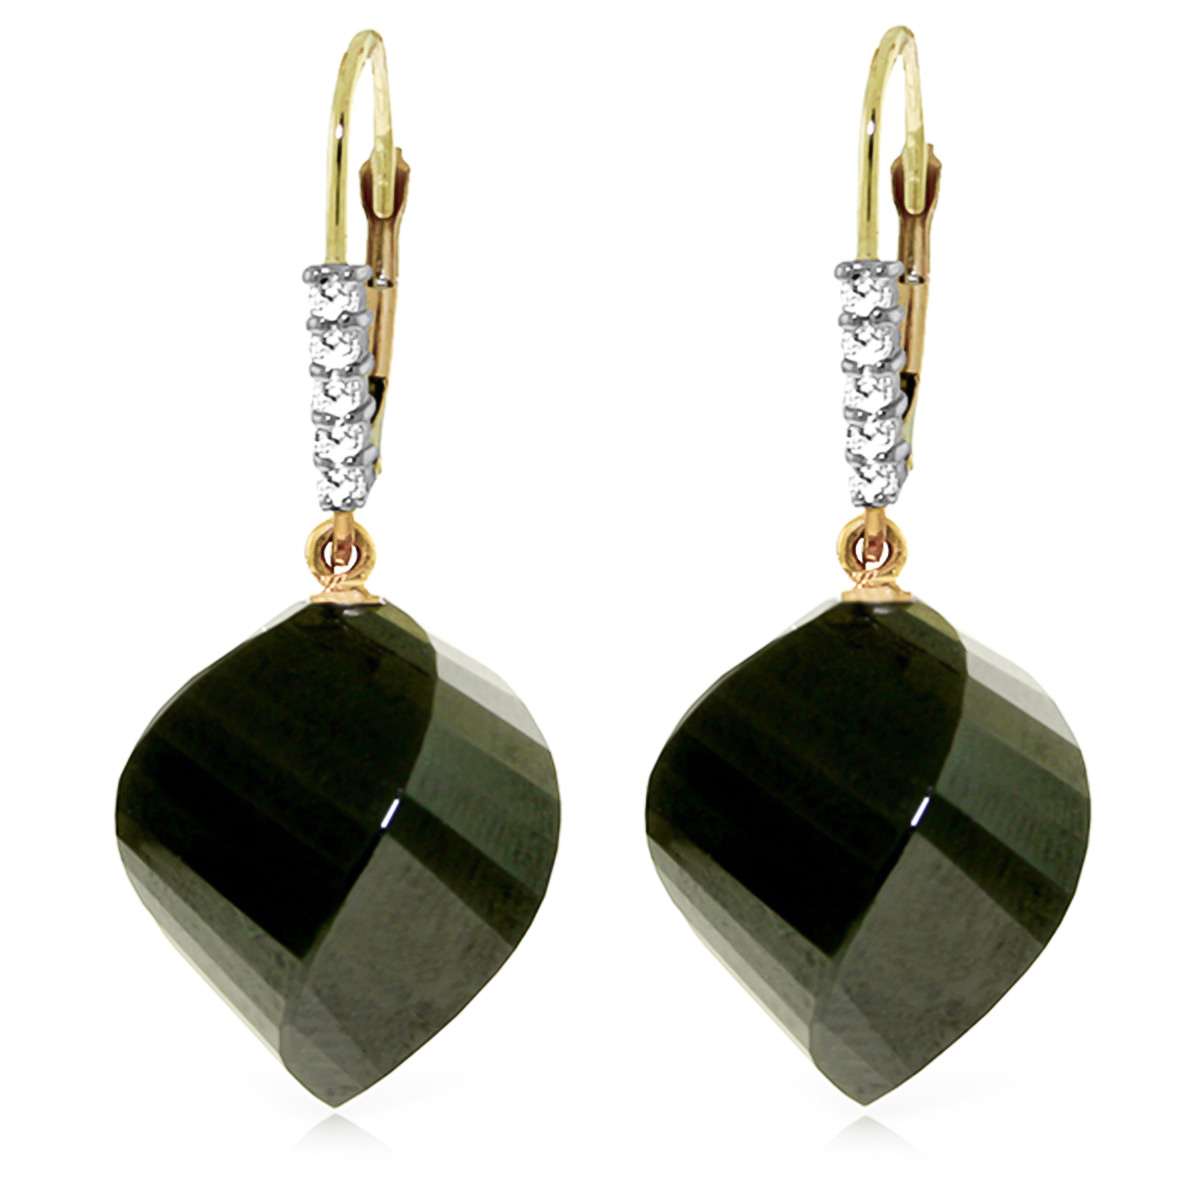 Black Spinel Drop Earrings 31.15 ctw in 9ct Gold